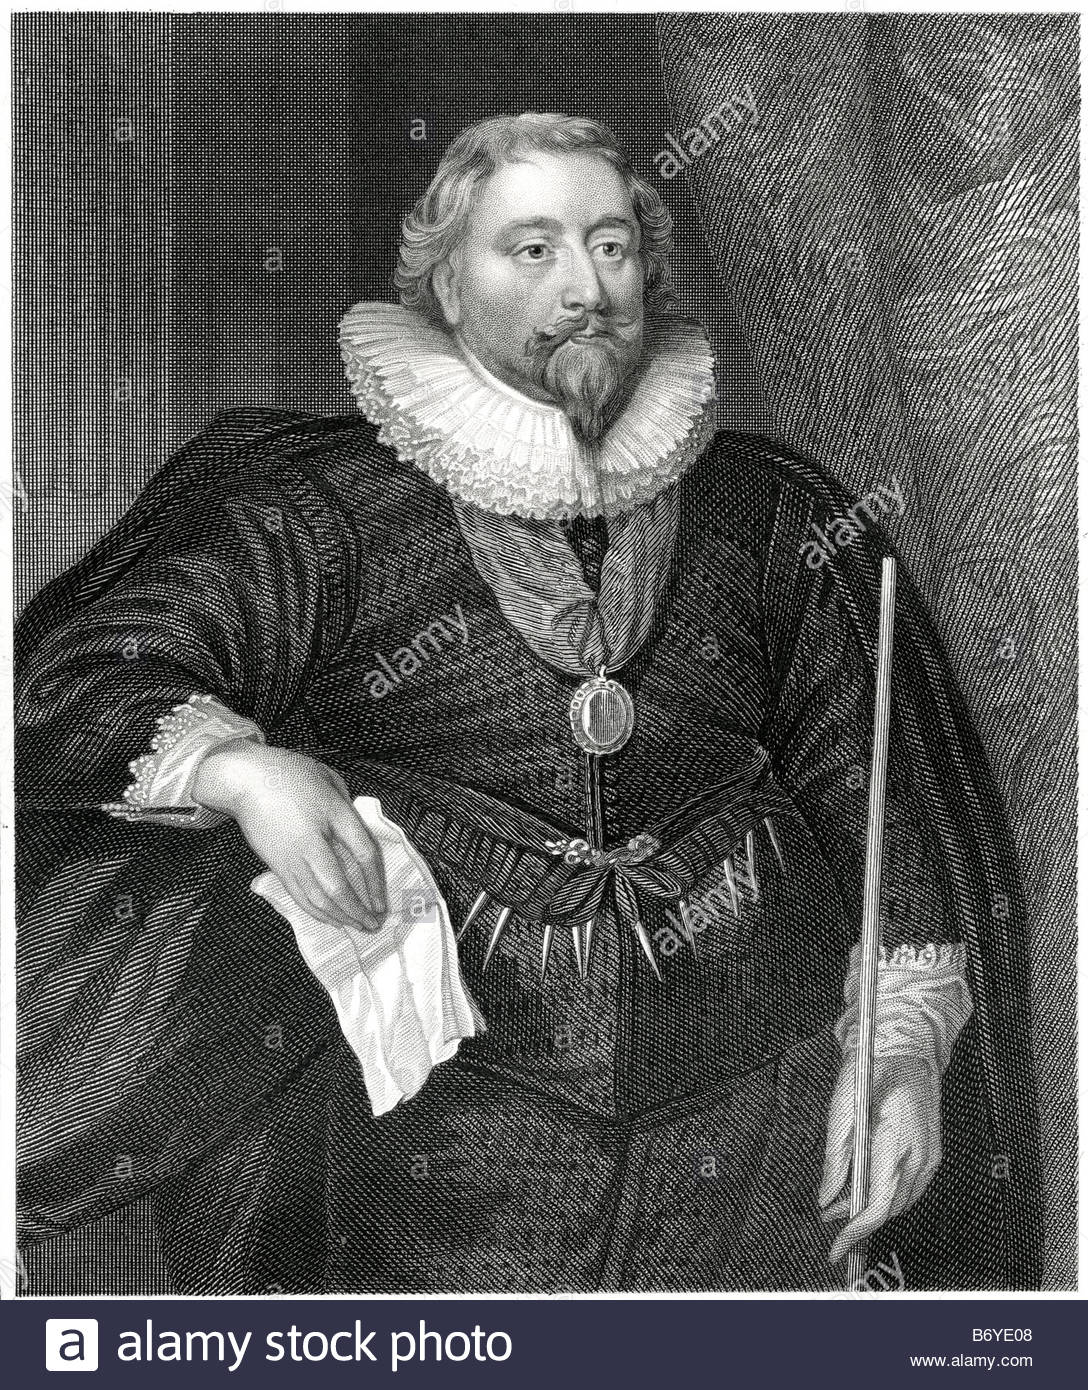 Richard Weston, 1st Earl of Portland, KG (1 March 1577 – 13 March  1634/1635), was Chancellor of the Exchequer Lord Treasurer